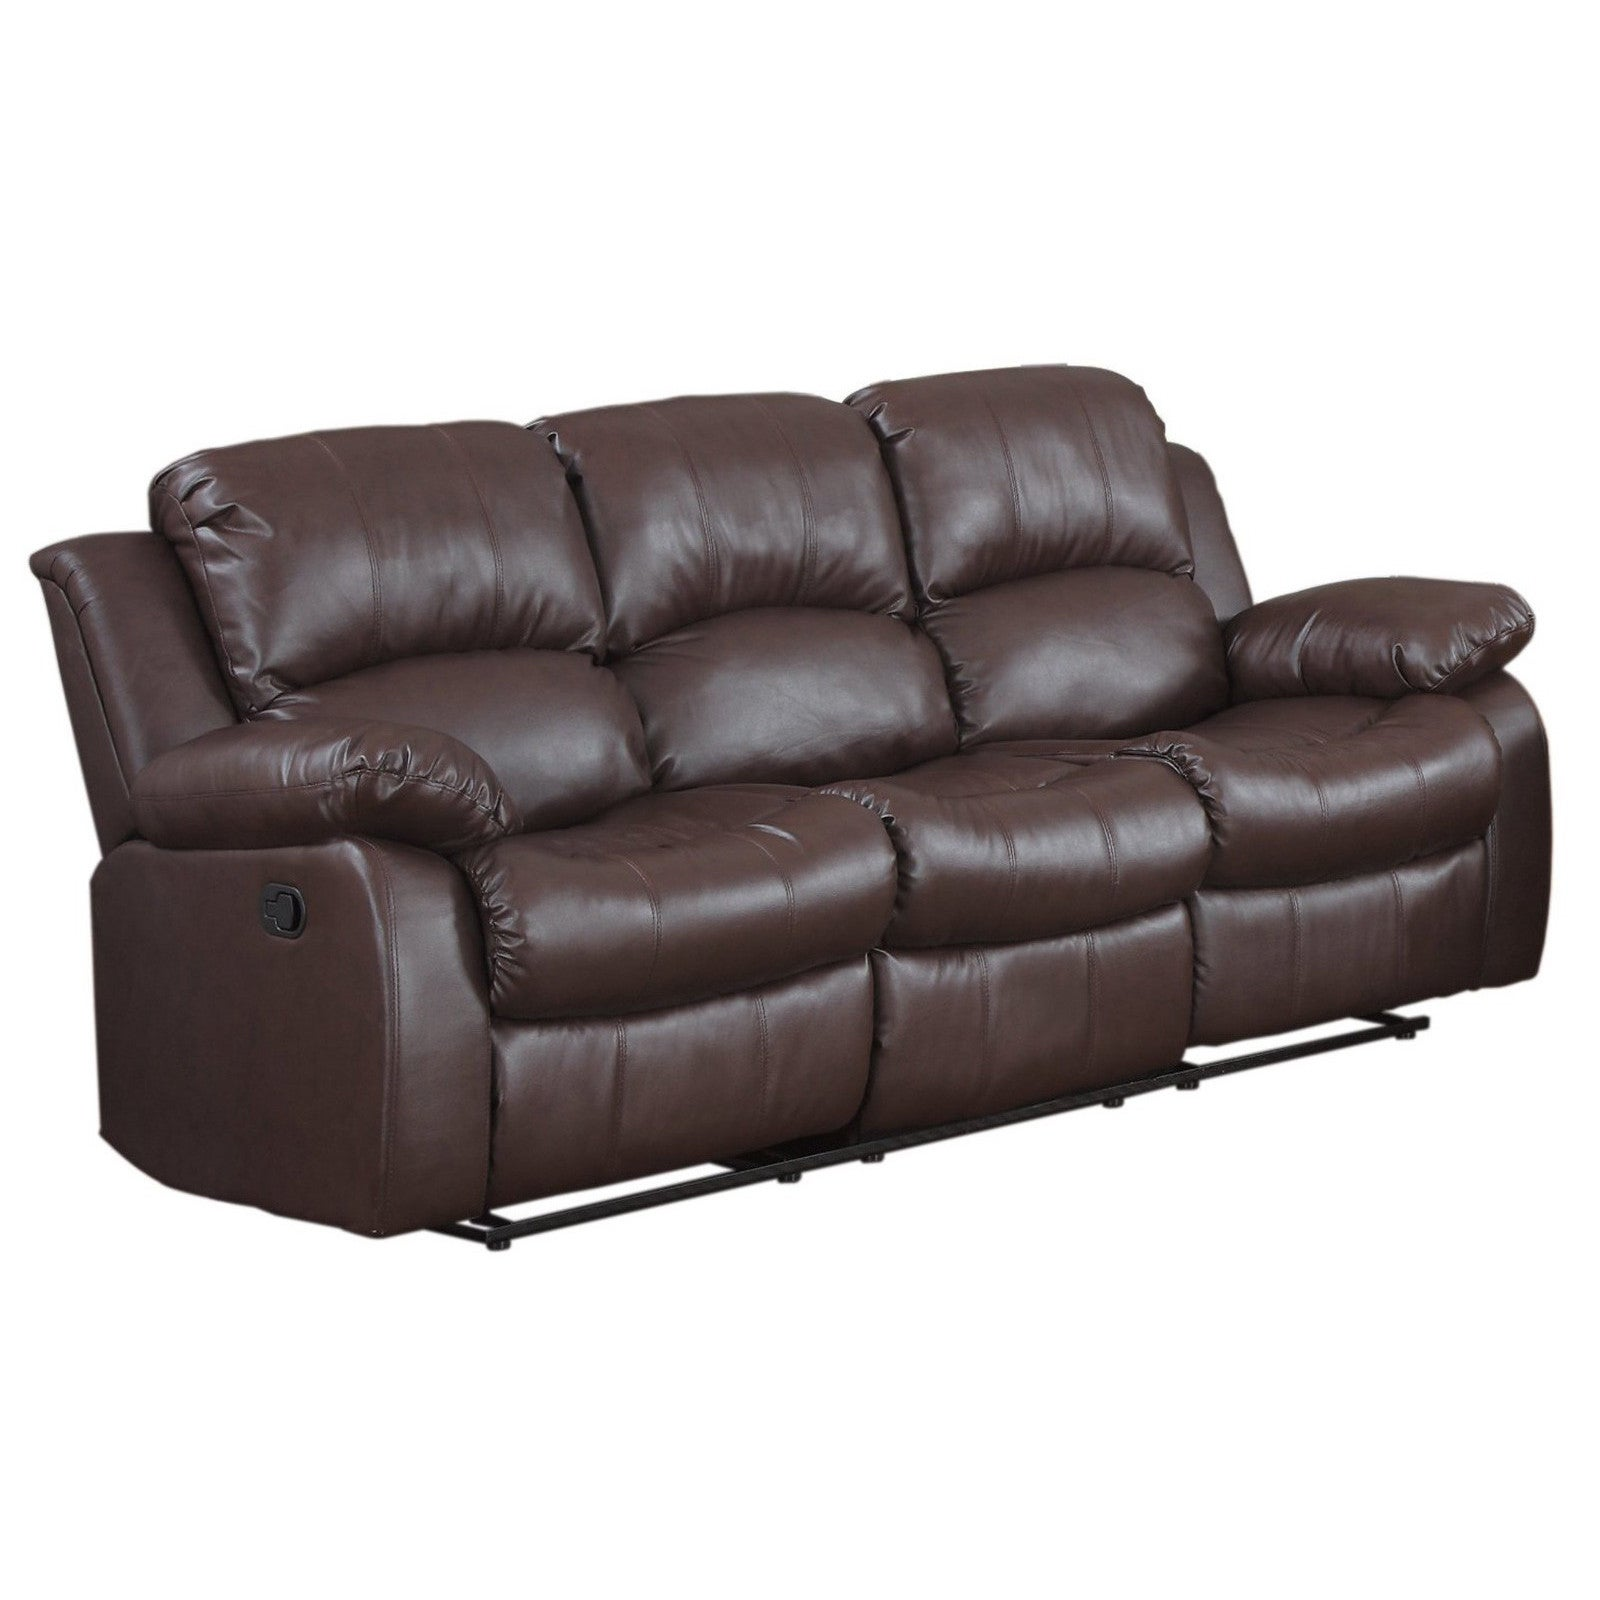 Magnificent 3 Seater Leather Sofa Argos Furniture Alluring ...